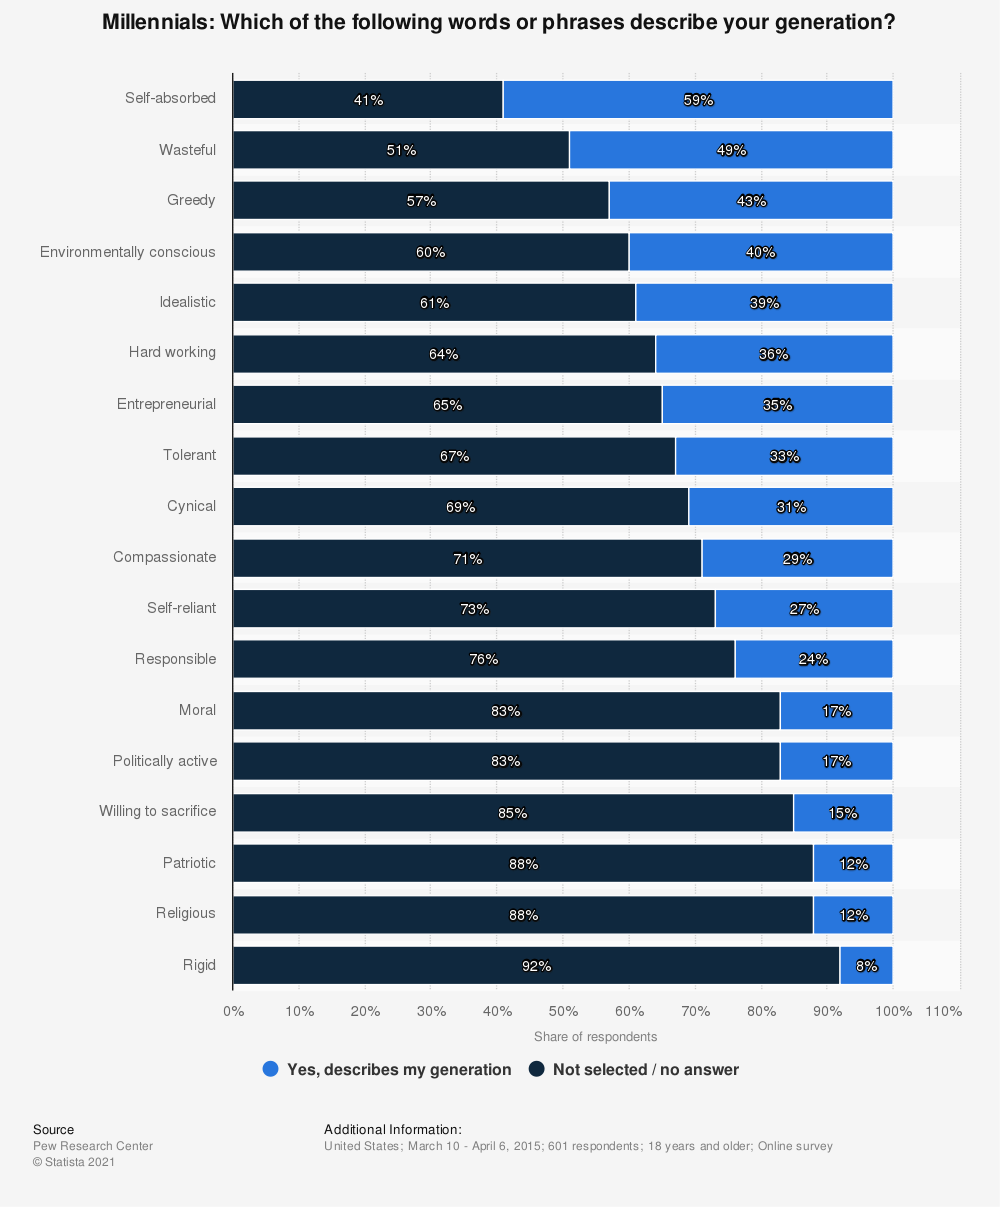 Statistic: Millennials: Which of the following words or phrases describe your generation? | Statista